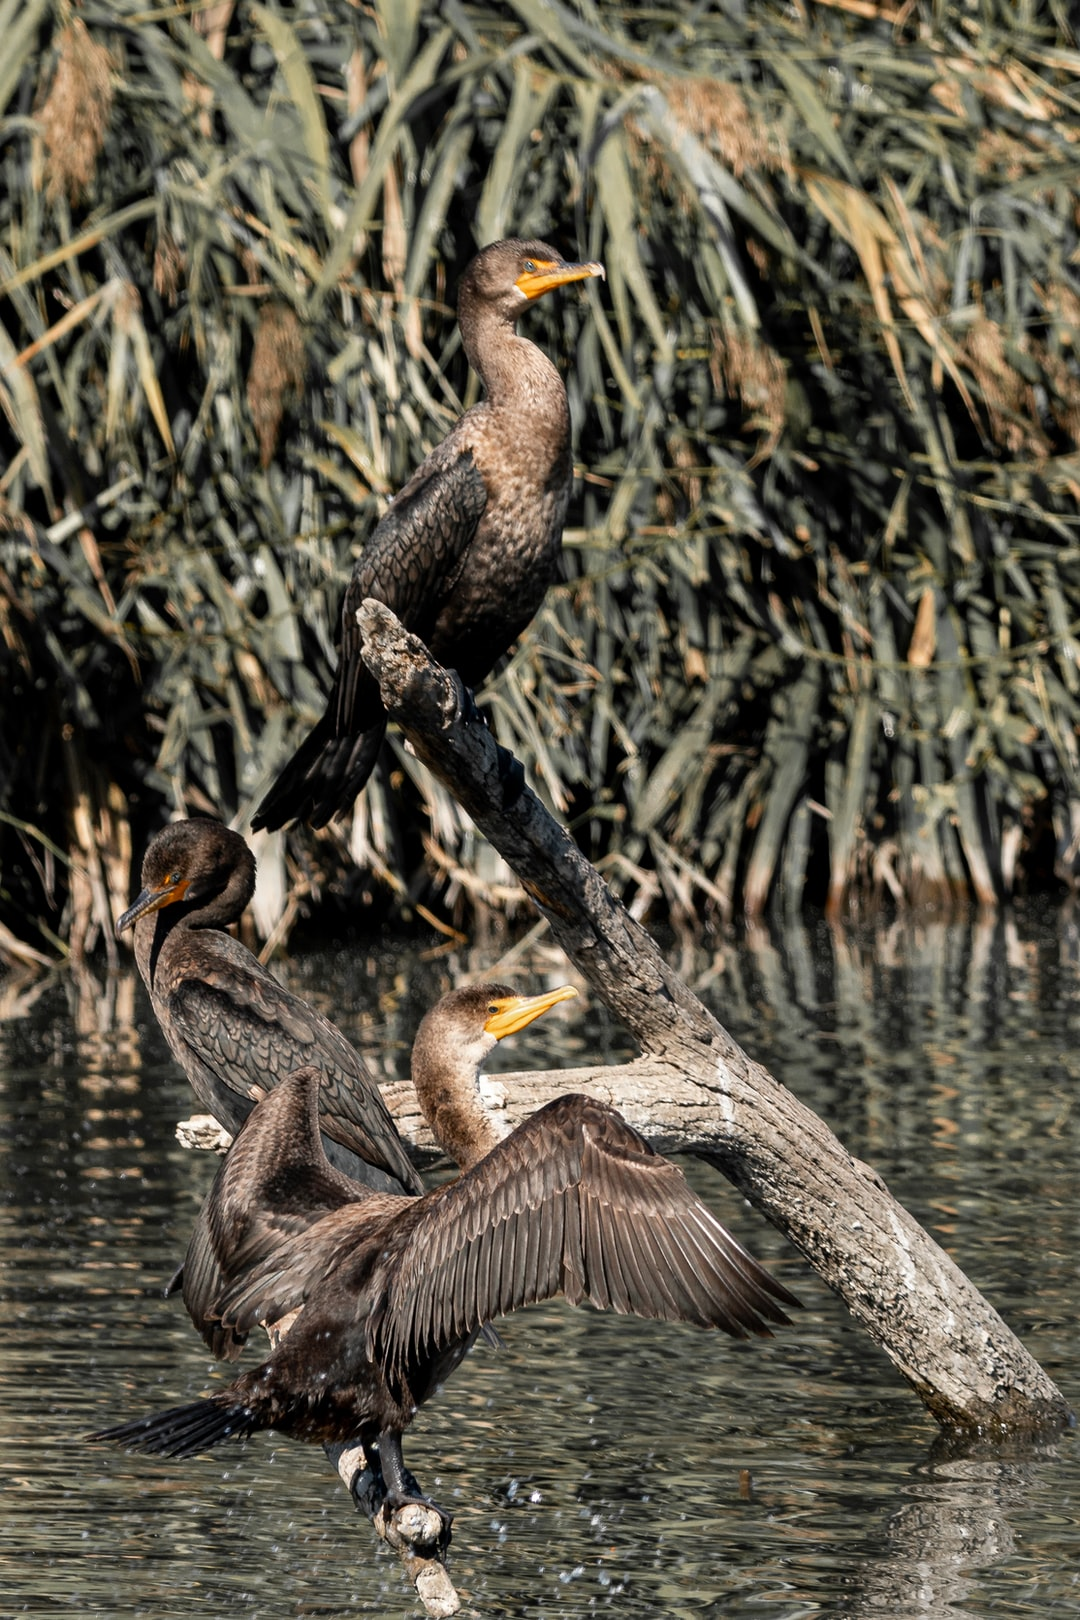 A pair of cormorant basking in the sun